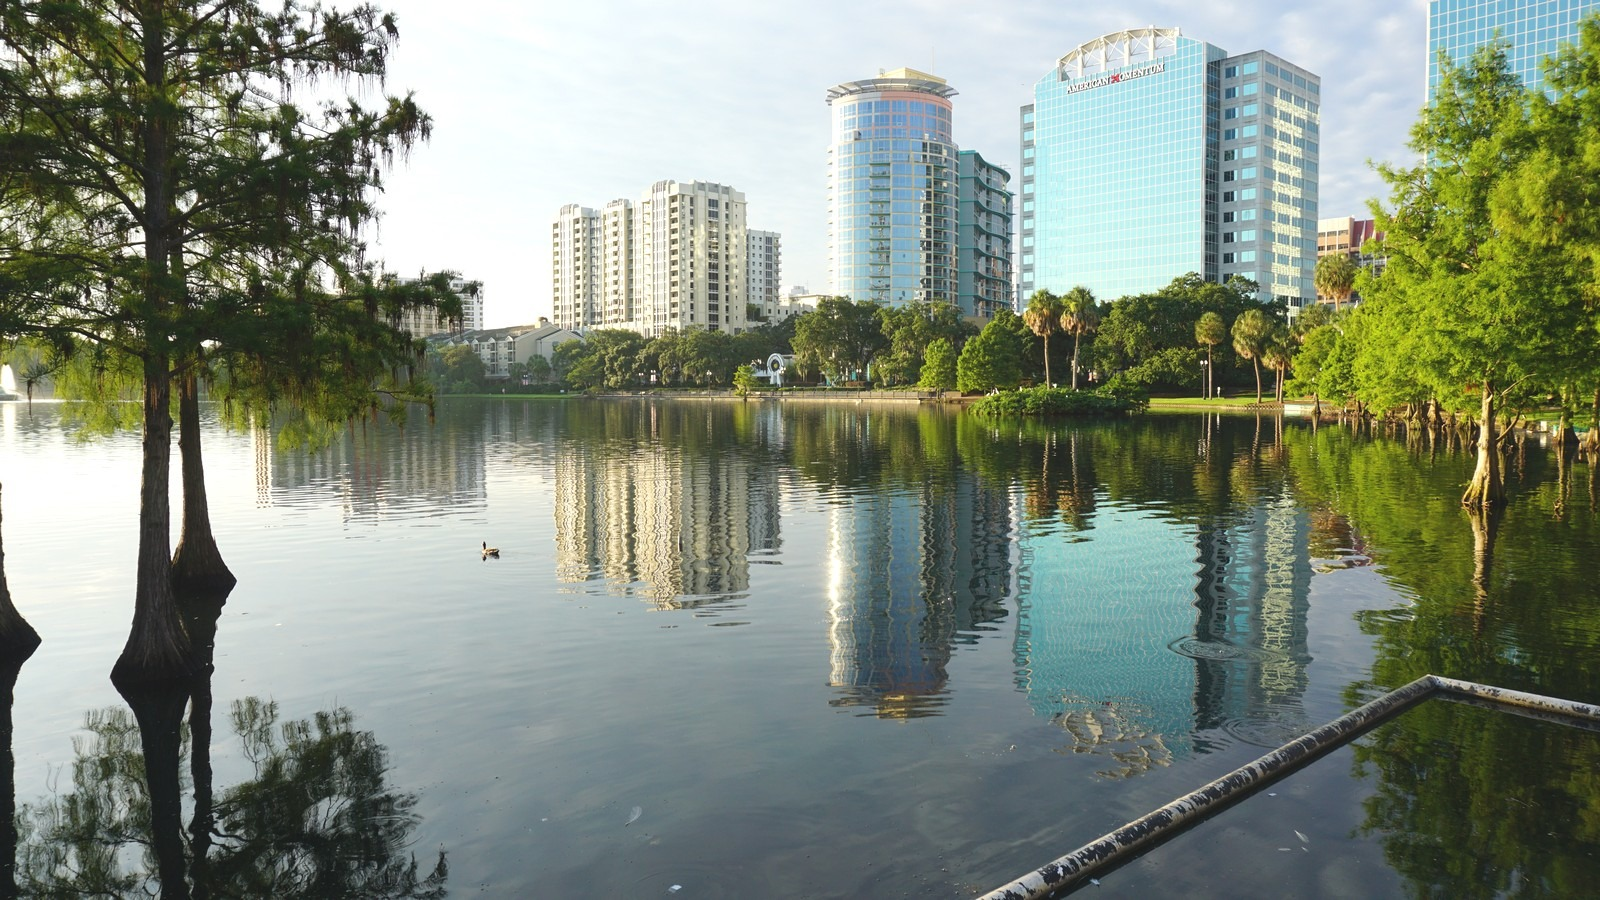 7 Things to Do When Traveling Through Orlando